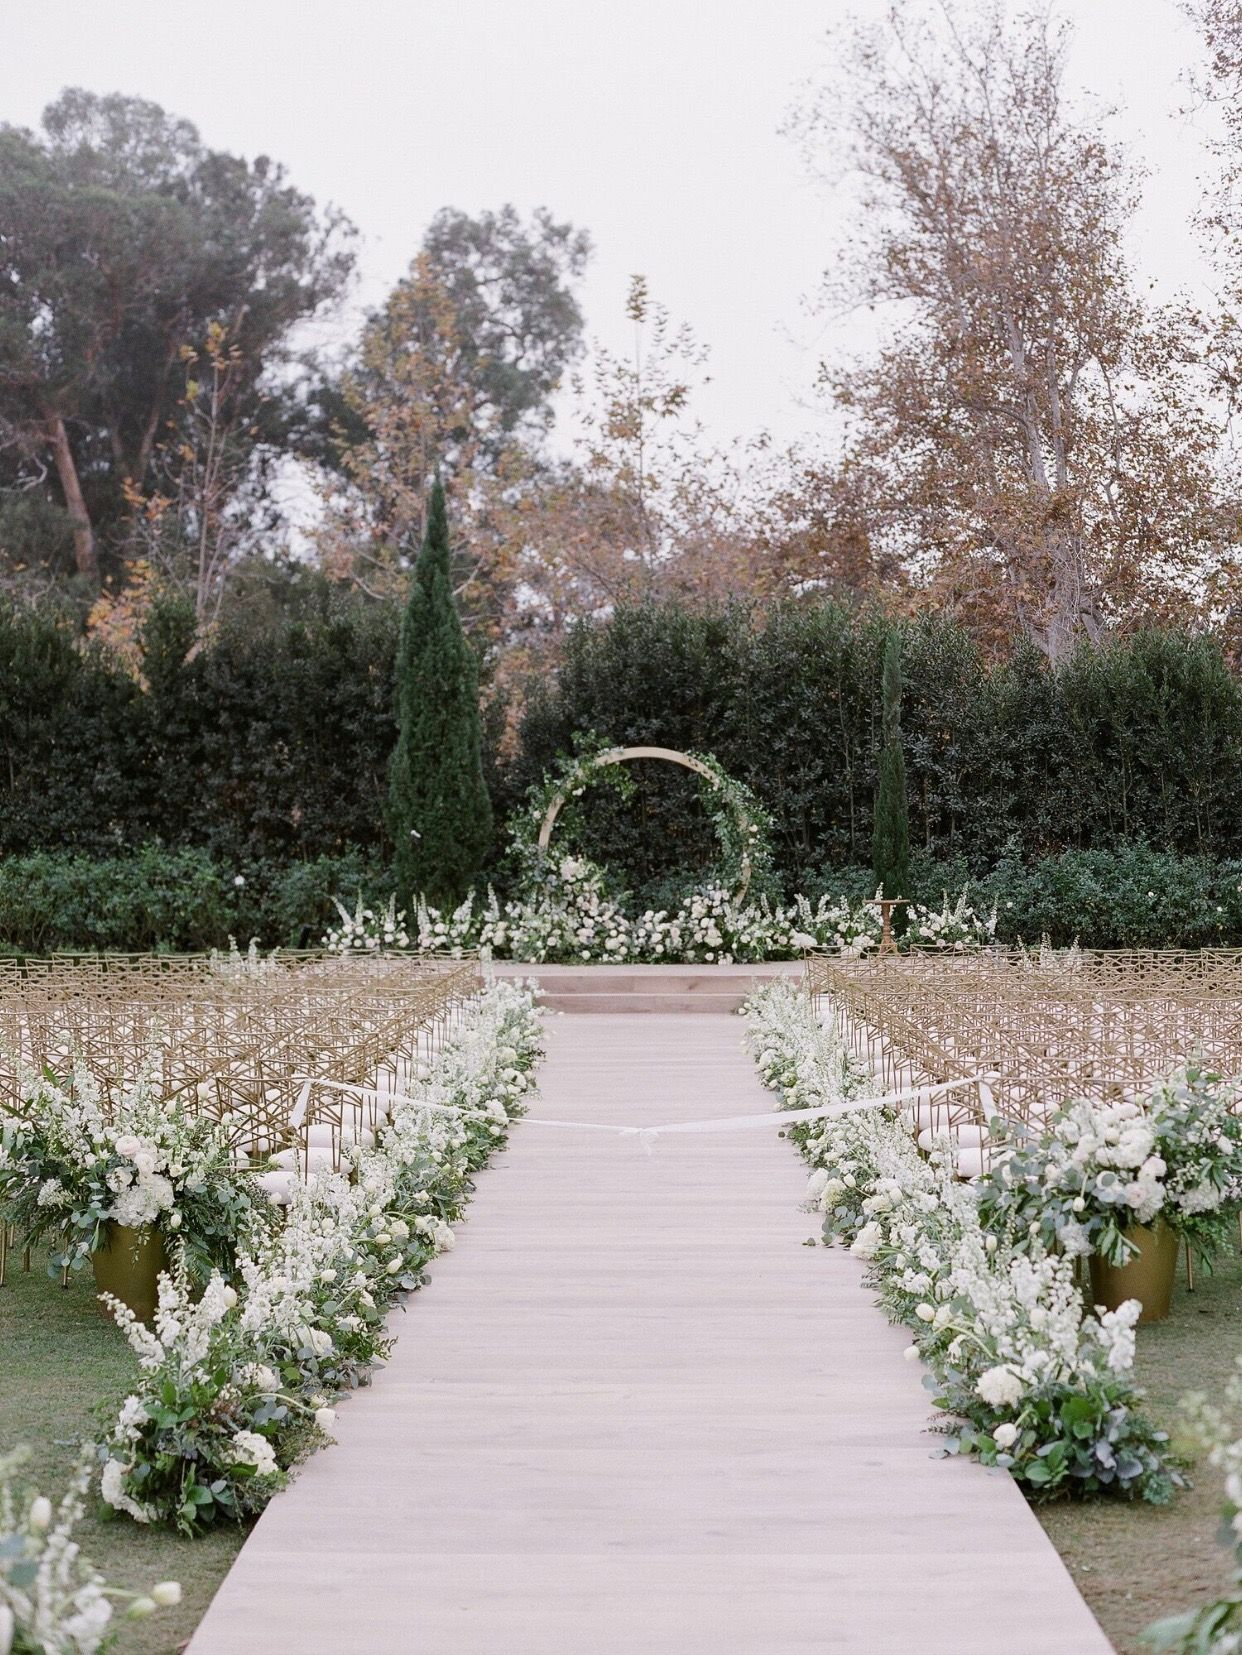 Home in 2019 | ARK - Real Events | Event design, Wedding events